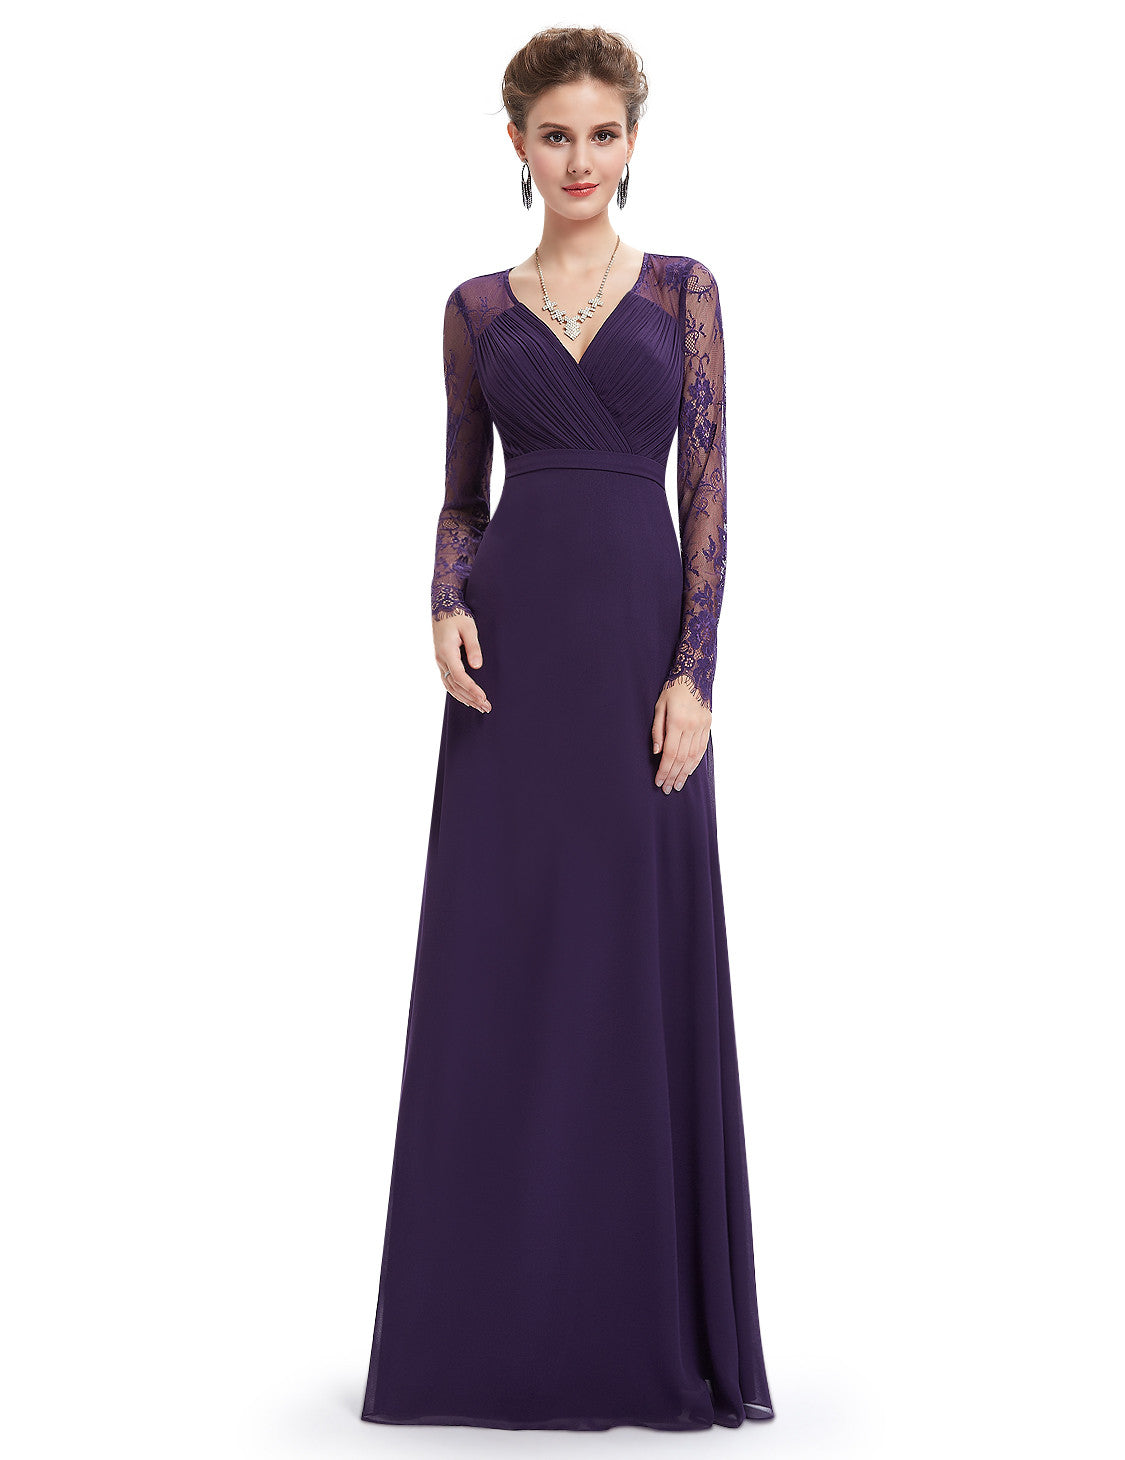 Obeige Purple Elegant V-neck Long Sleeve Evening Dress